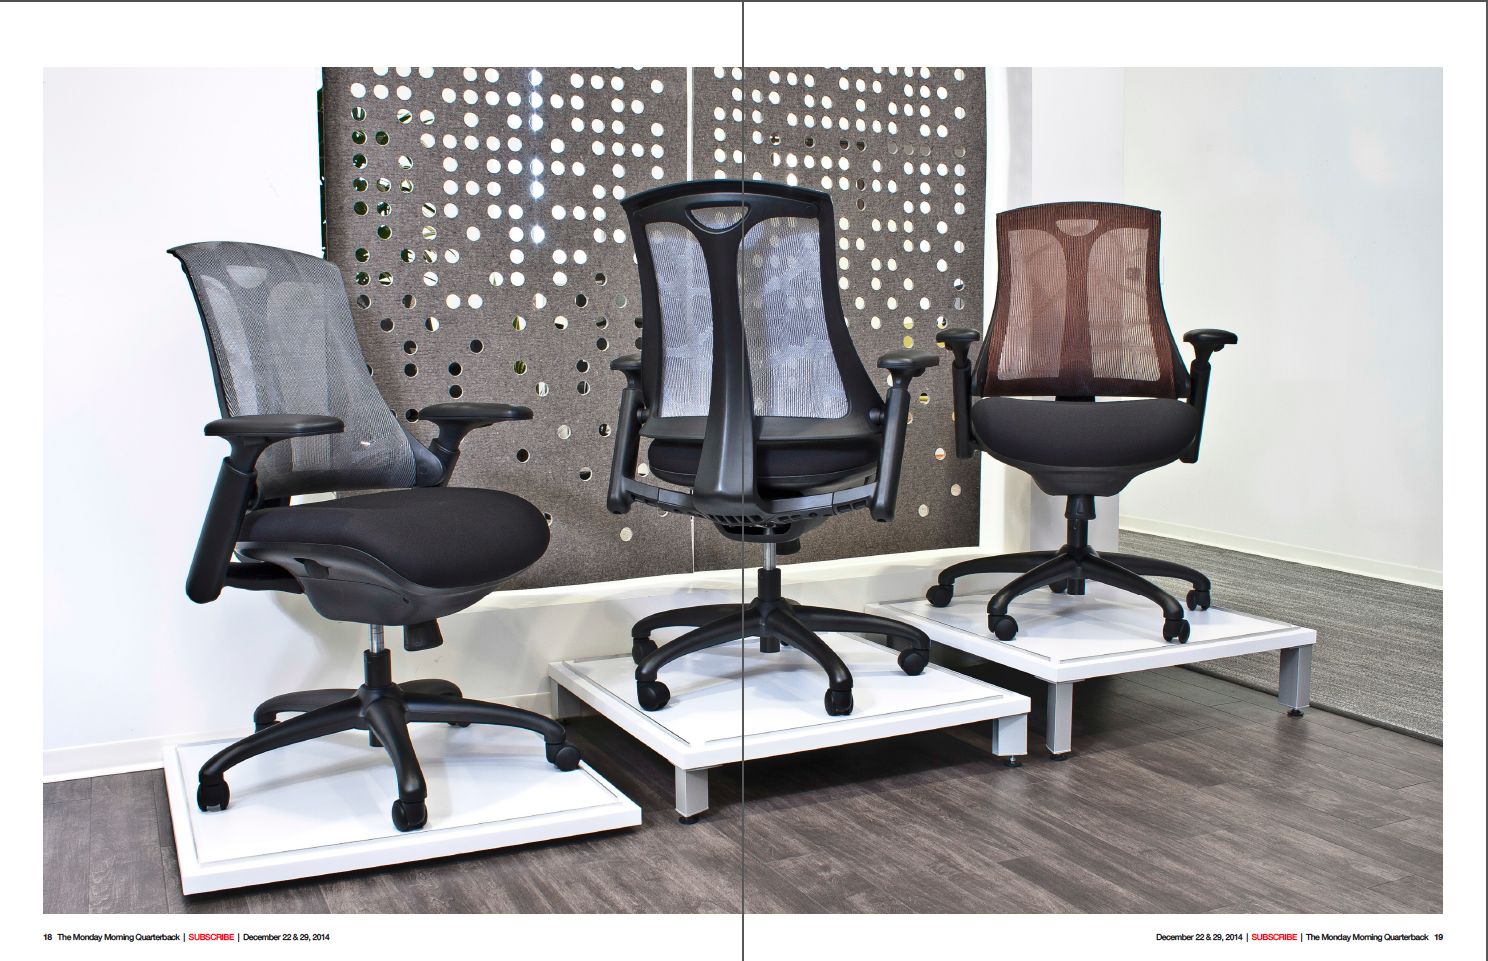 Marvelous Mmqb Article Featuring Ergo Contract Furniture Has More Than